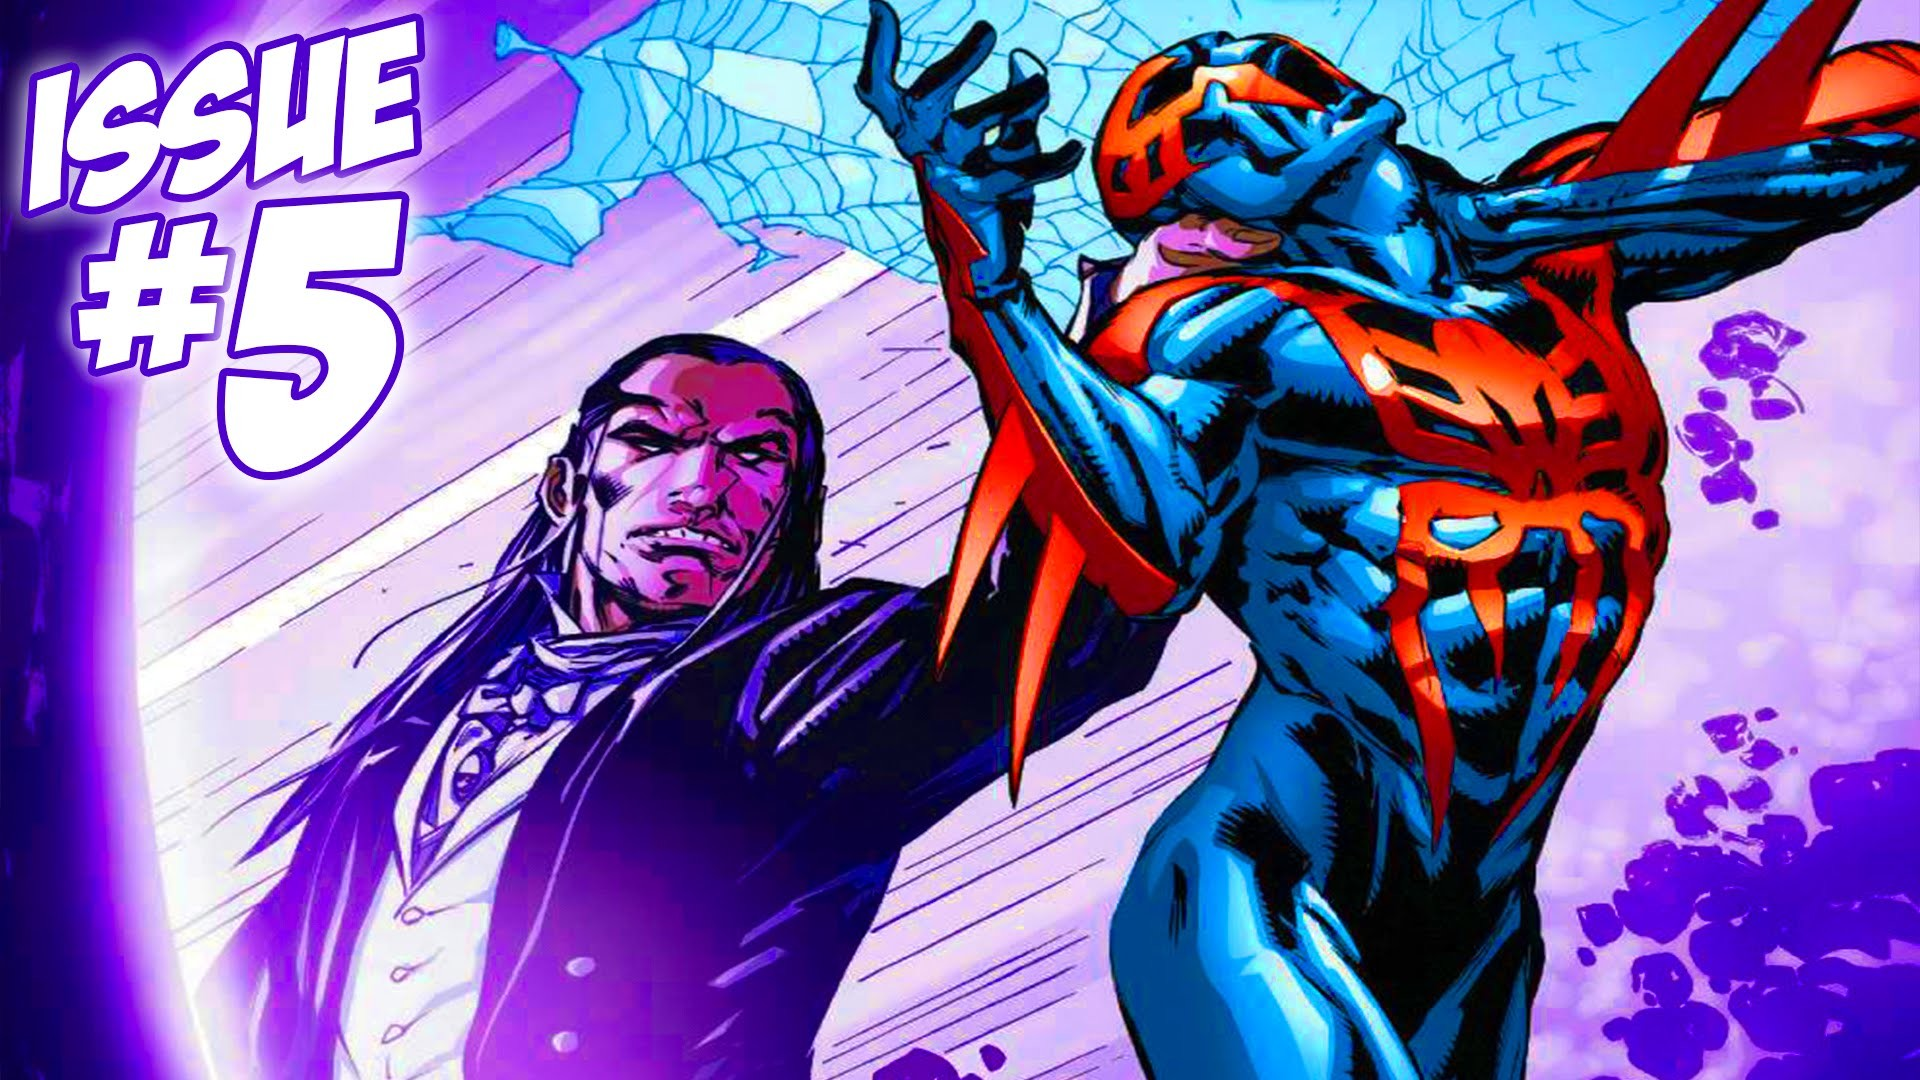 Spider-Man 2099 Issue #5 (Edge of Spider-Verse) Full Comic Review, Giveaway  & WINNER! (2014) – YouTube